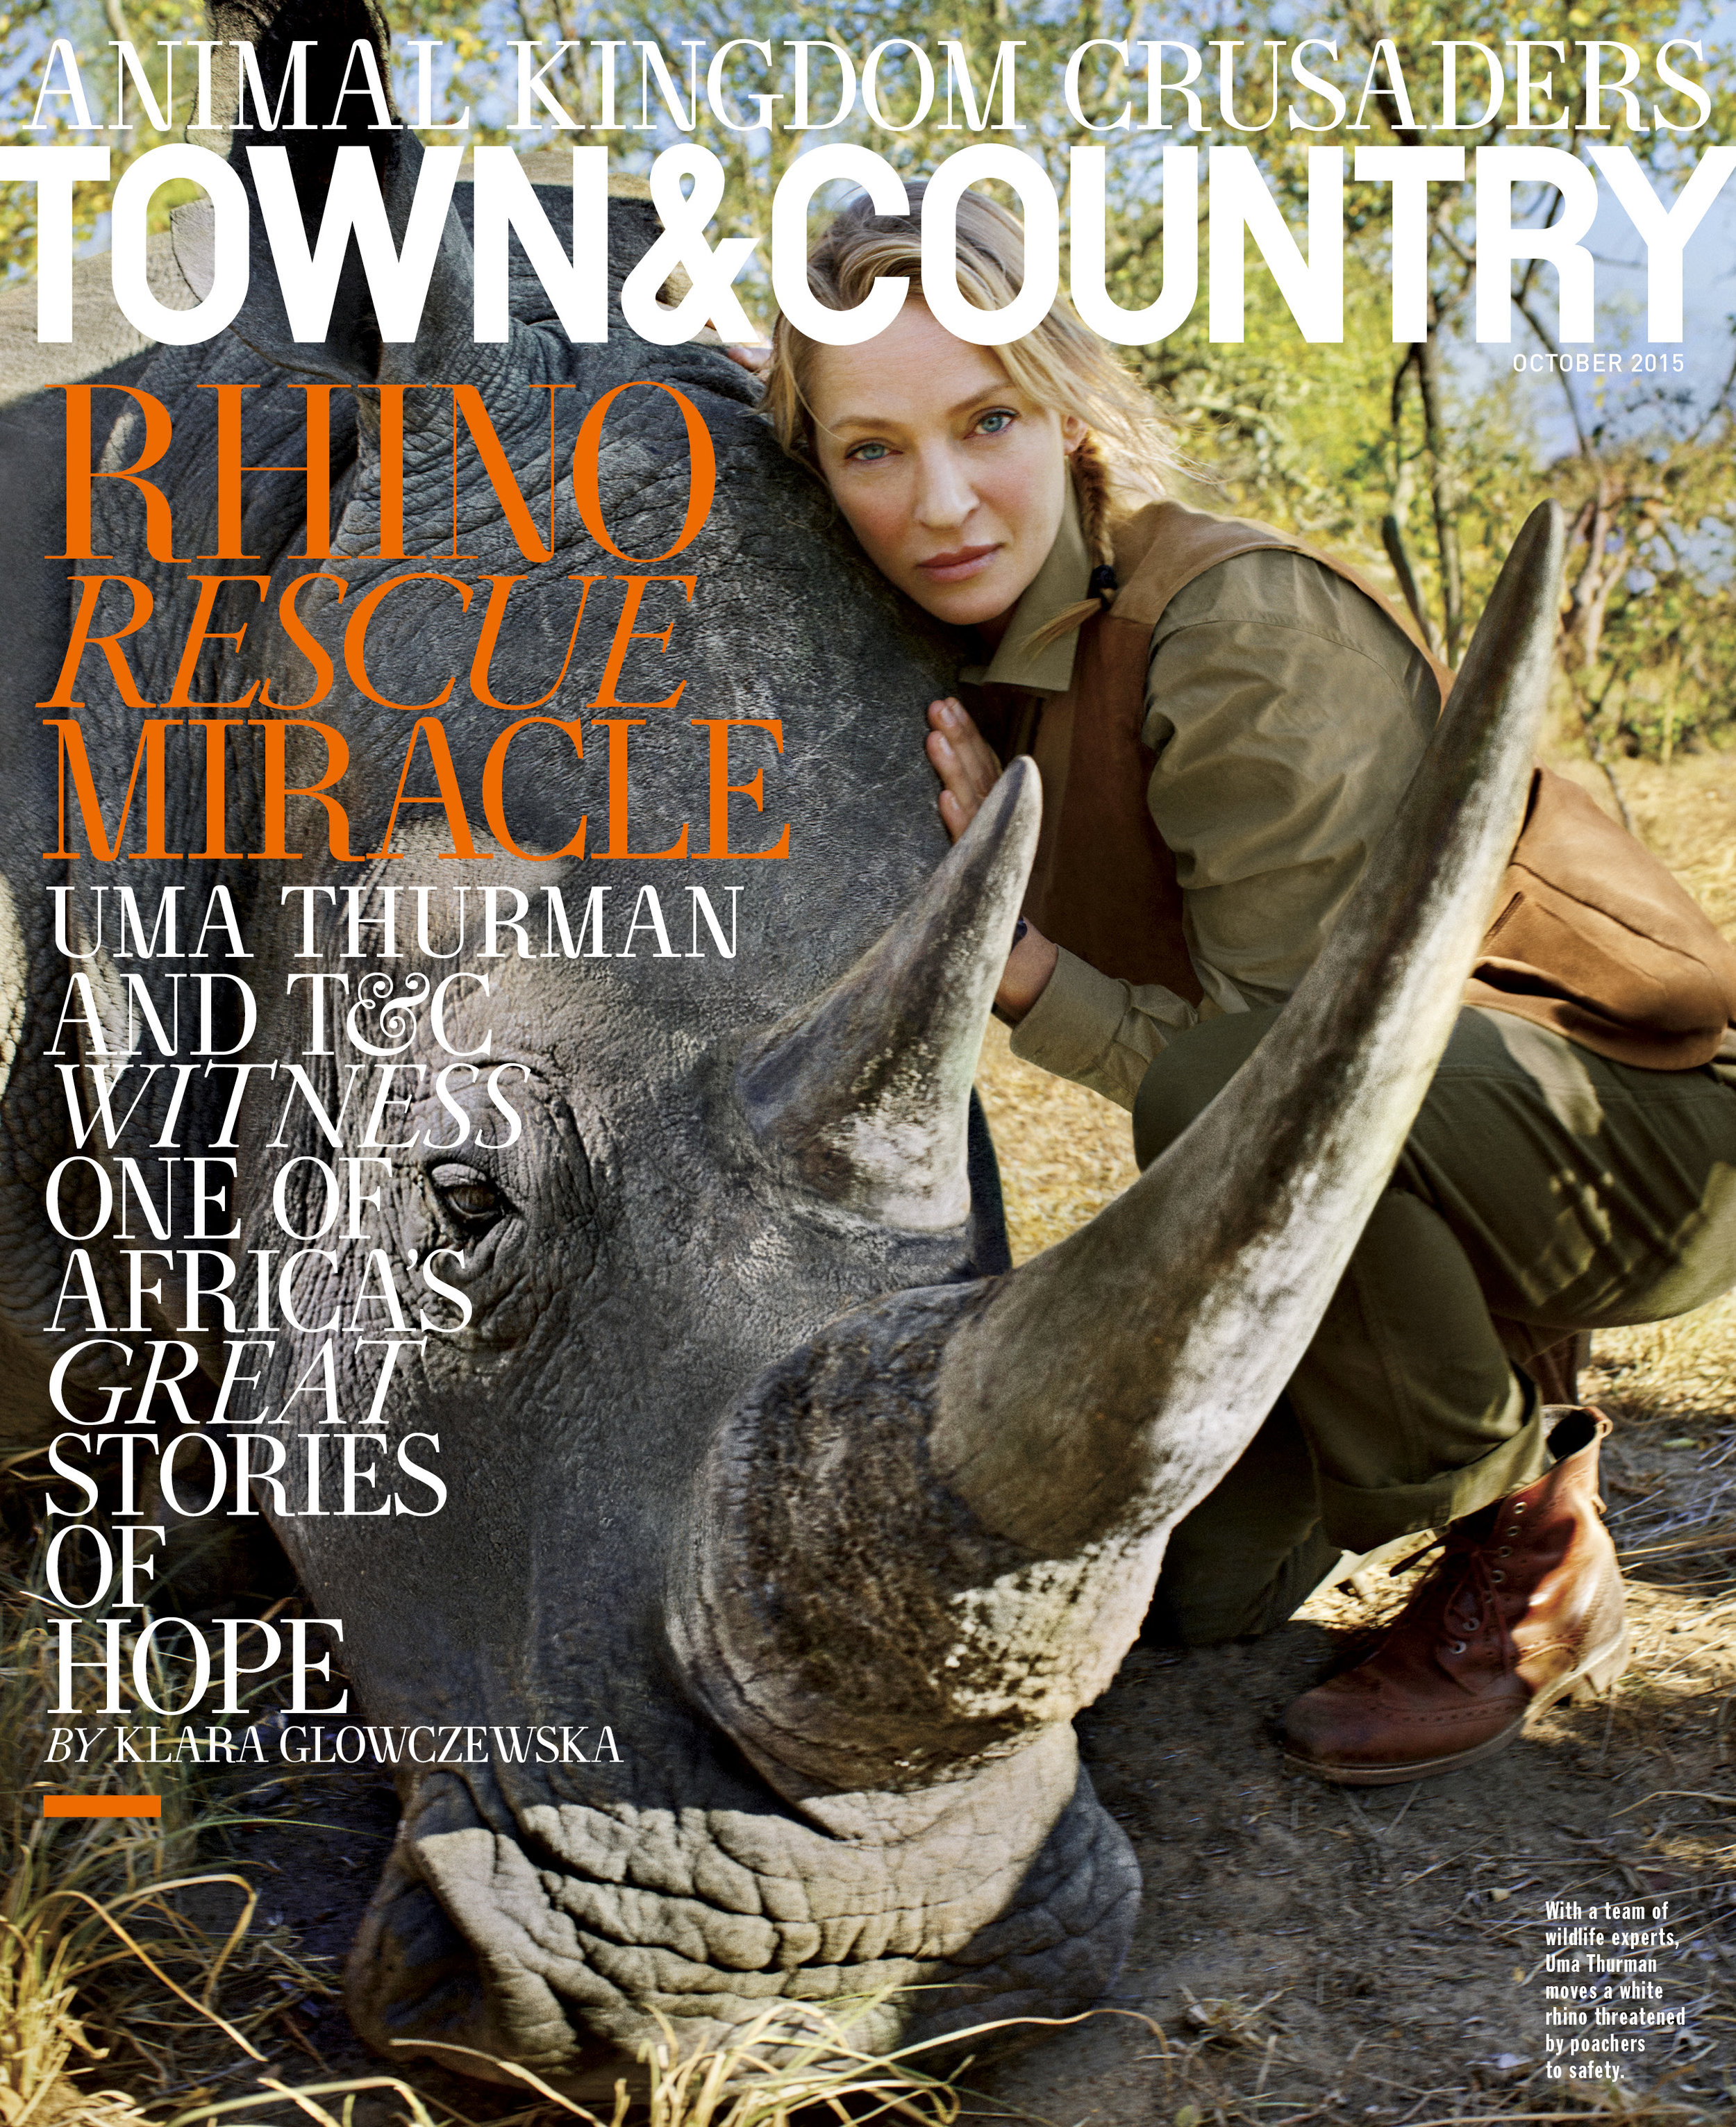 Uma Thurman, Town & Country Magazine, October 2015.jpg